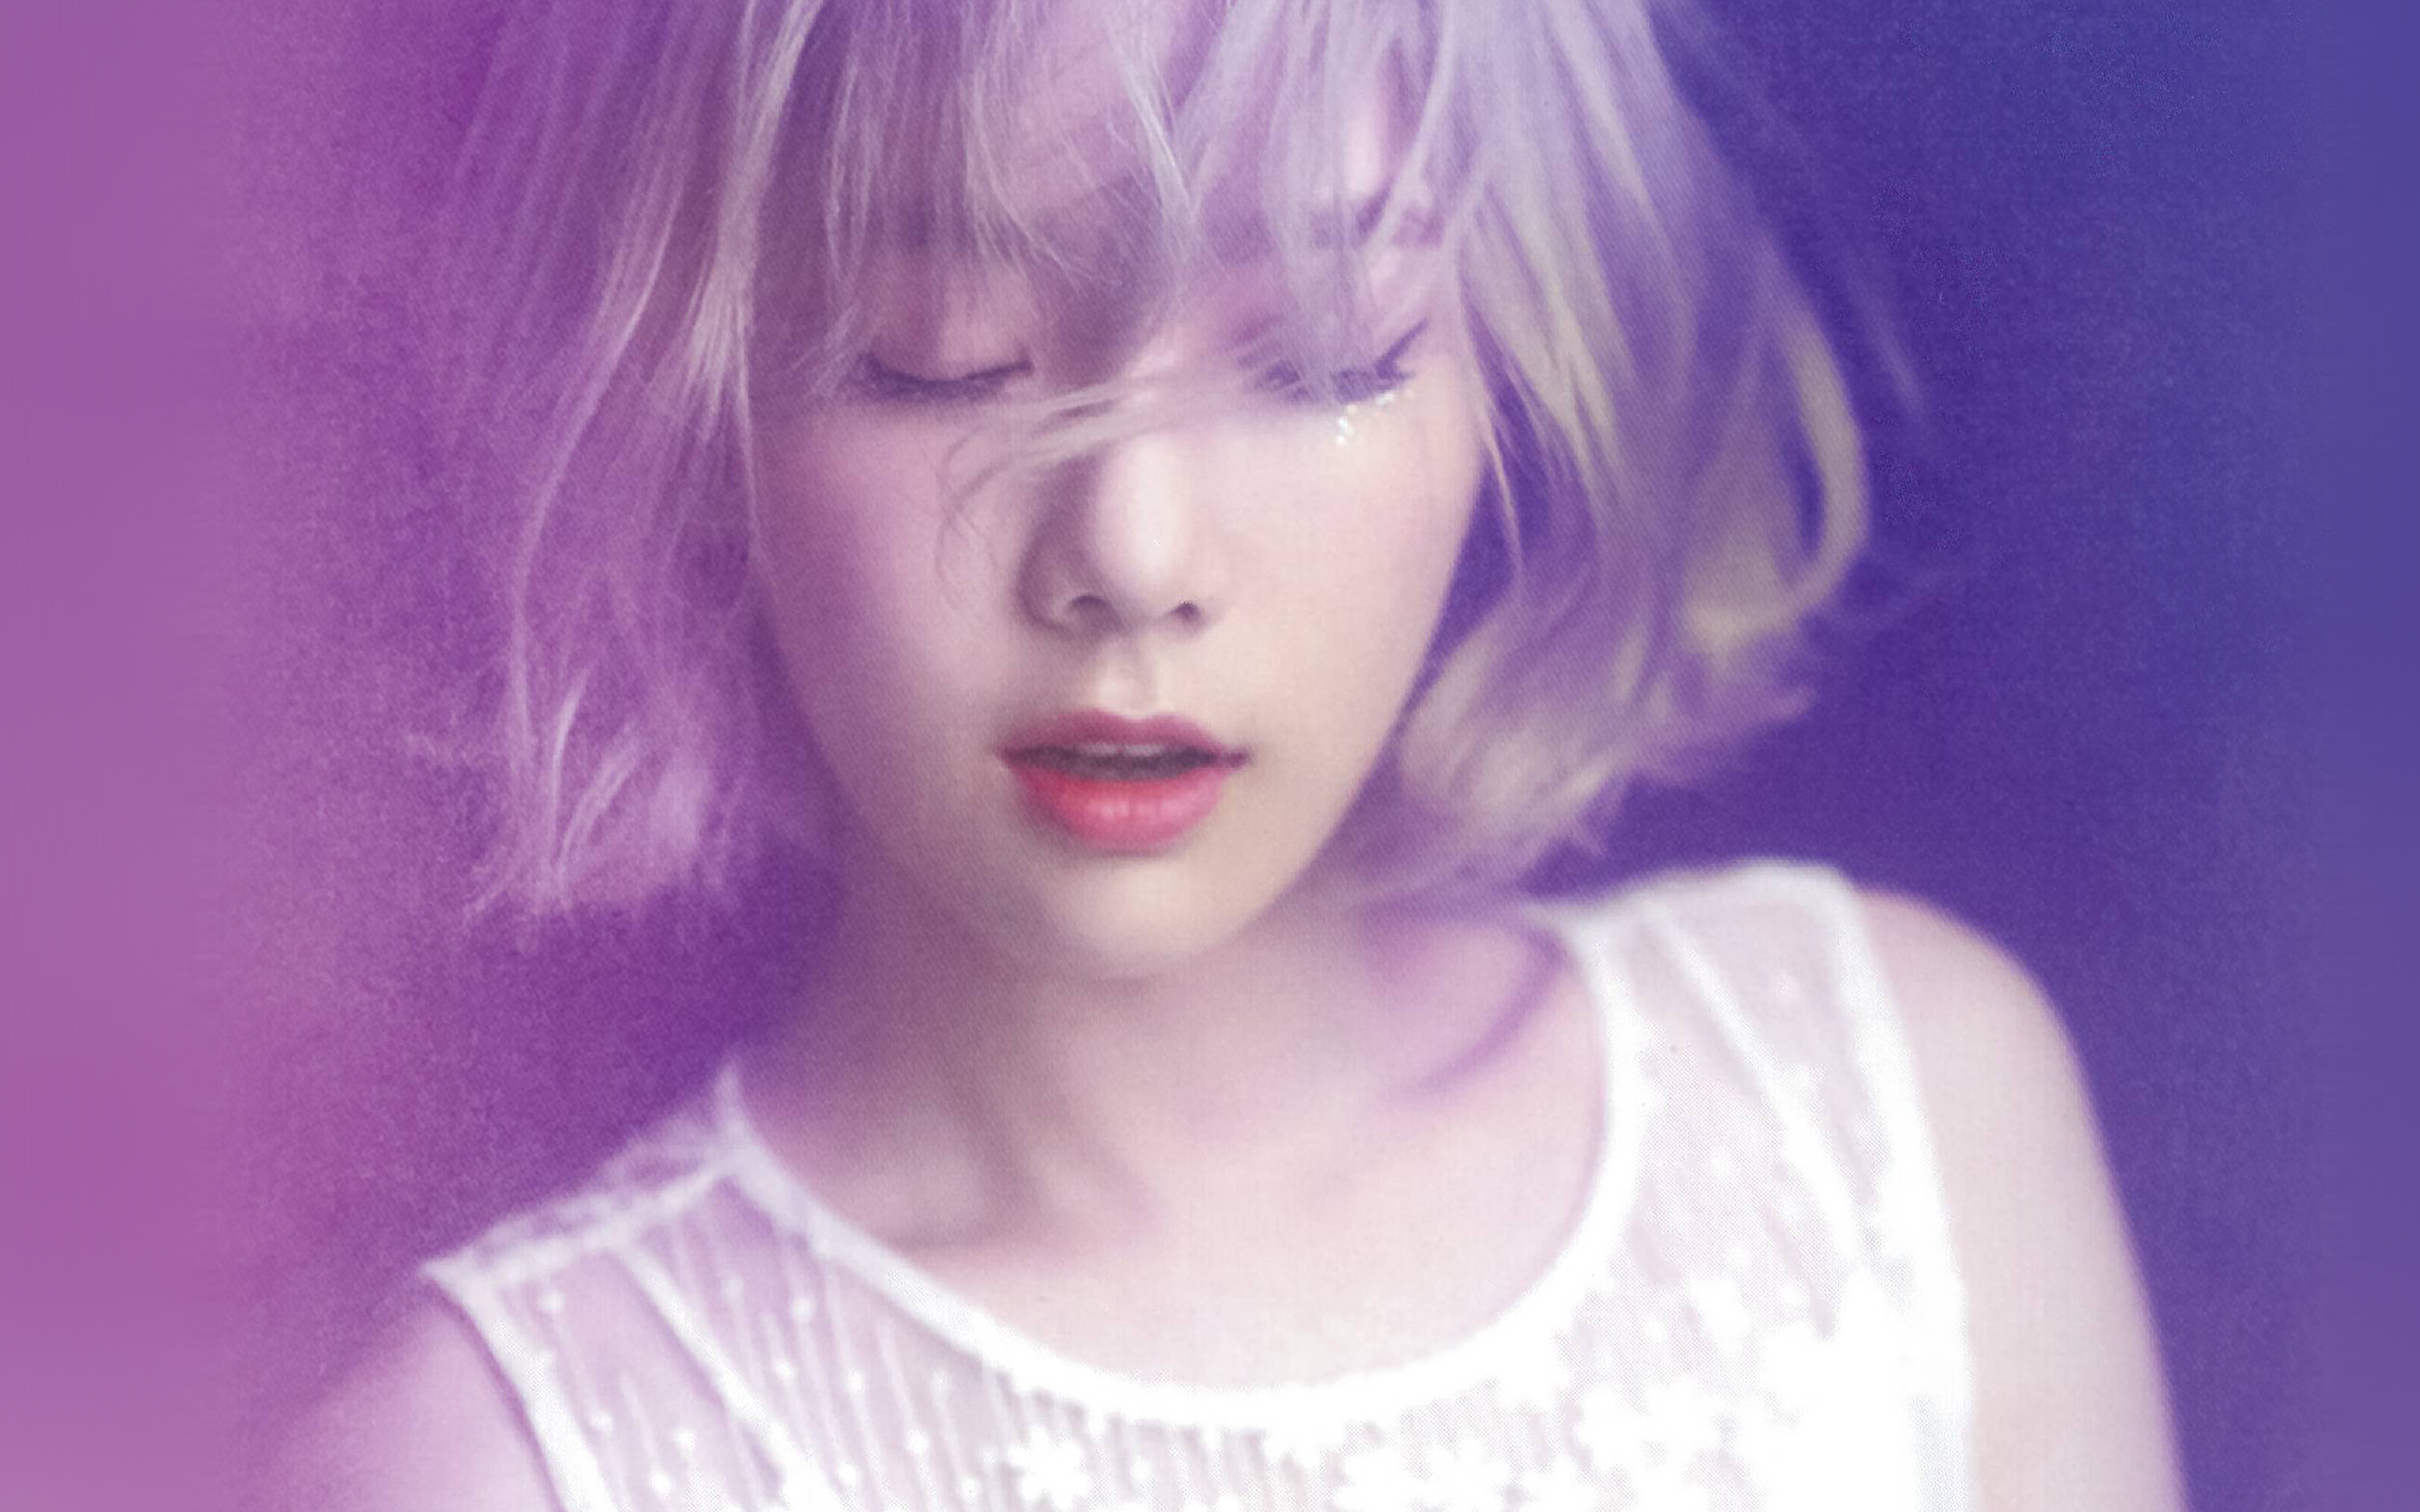 Cute Girly Wallpapers For Android Hl10 Taeyeon Kpop Snsd Purple Pink Girl Wallpaper